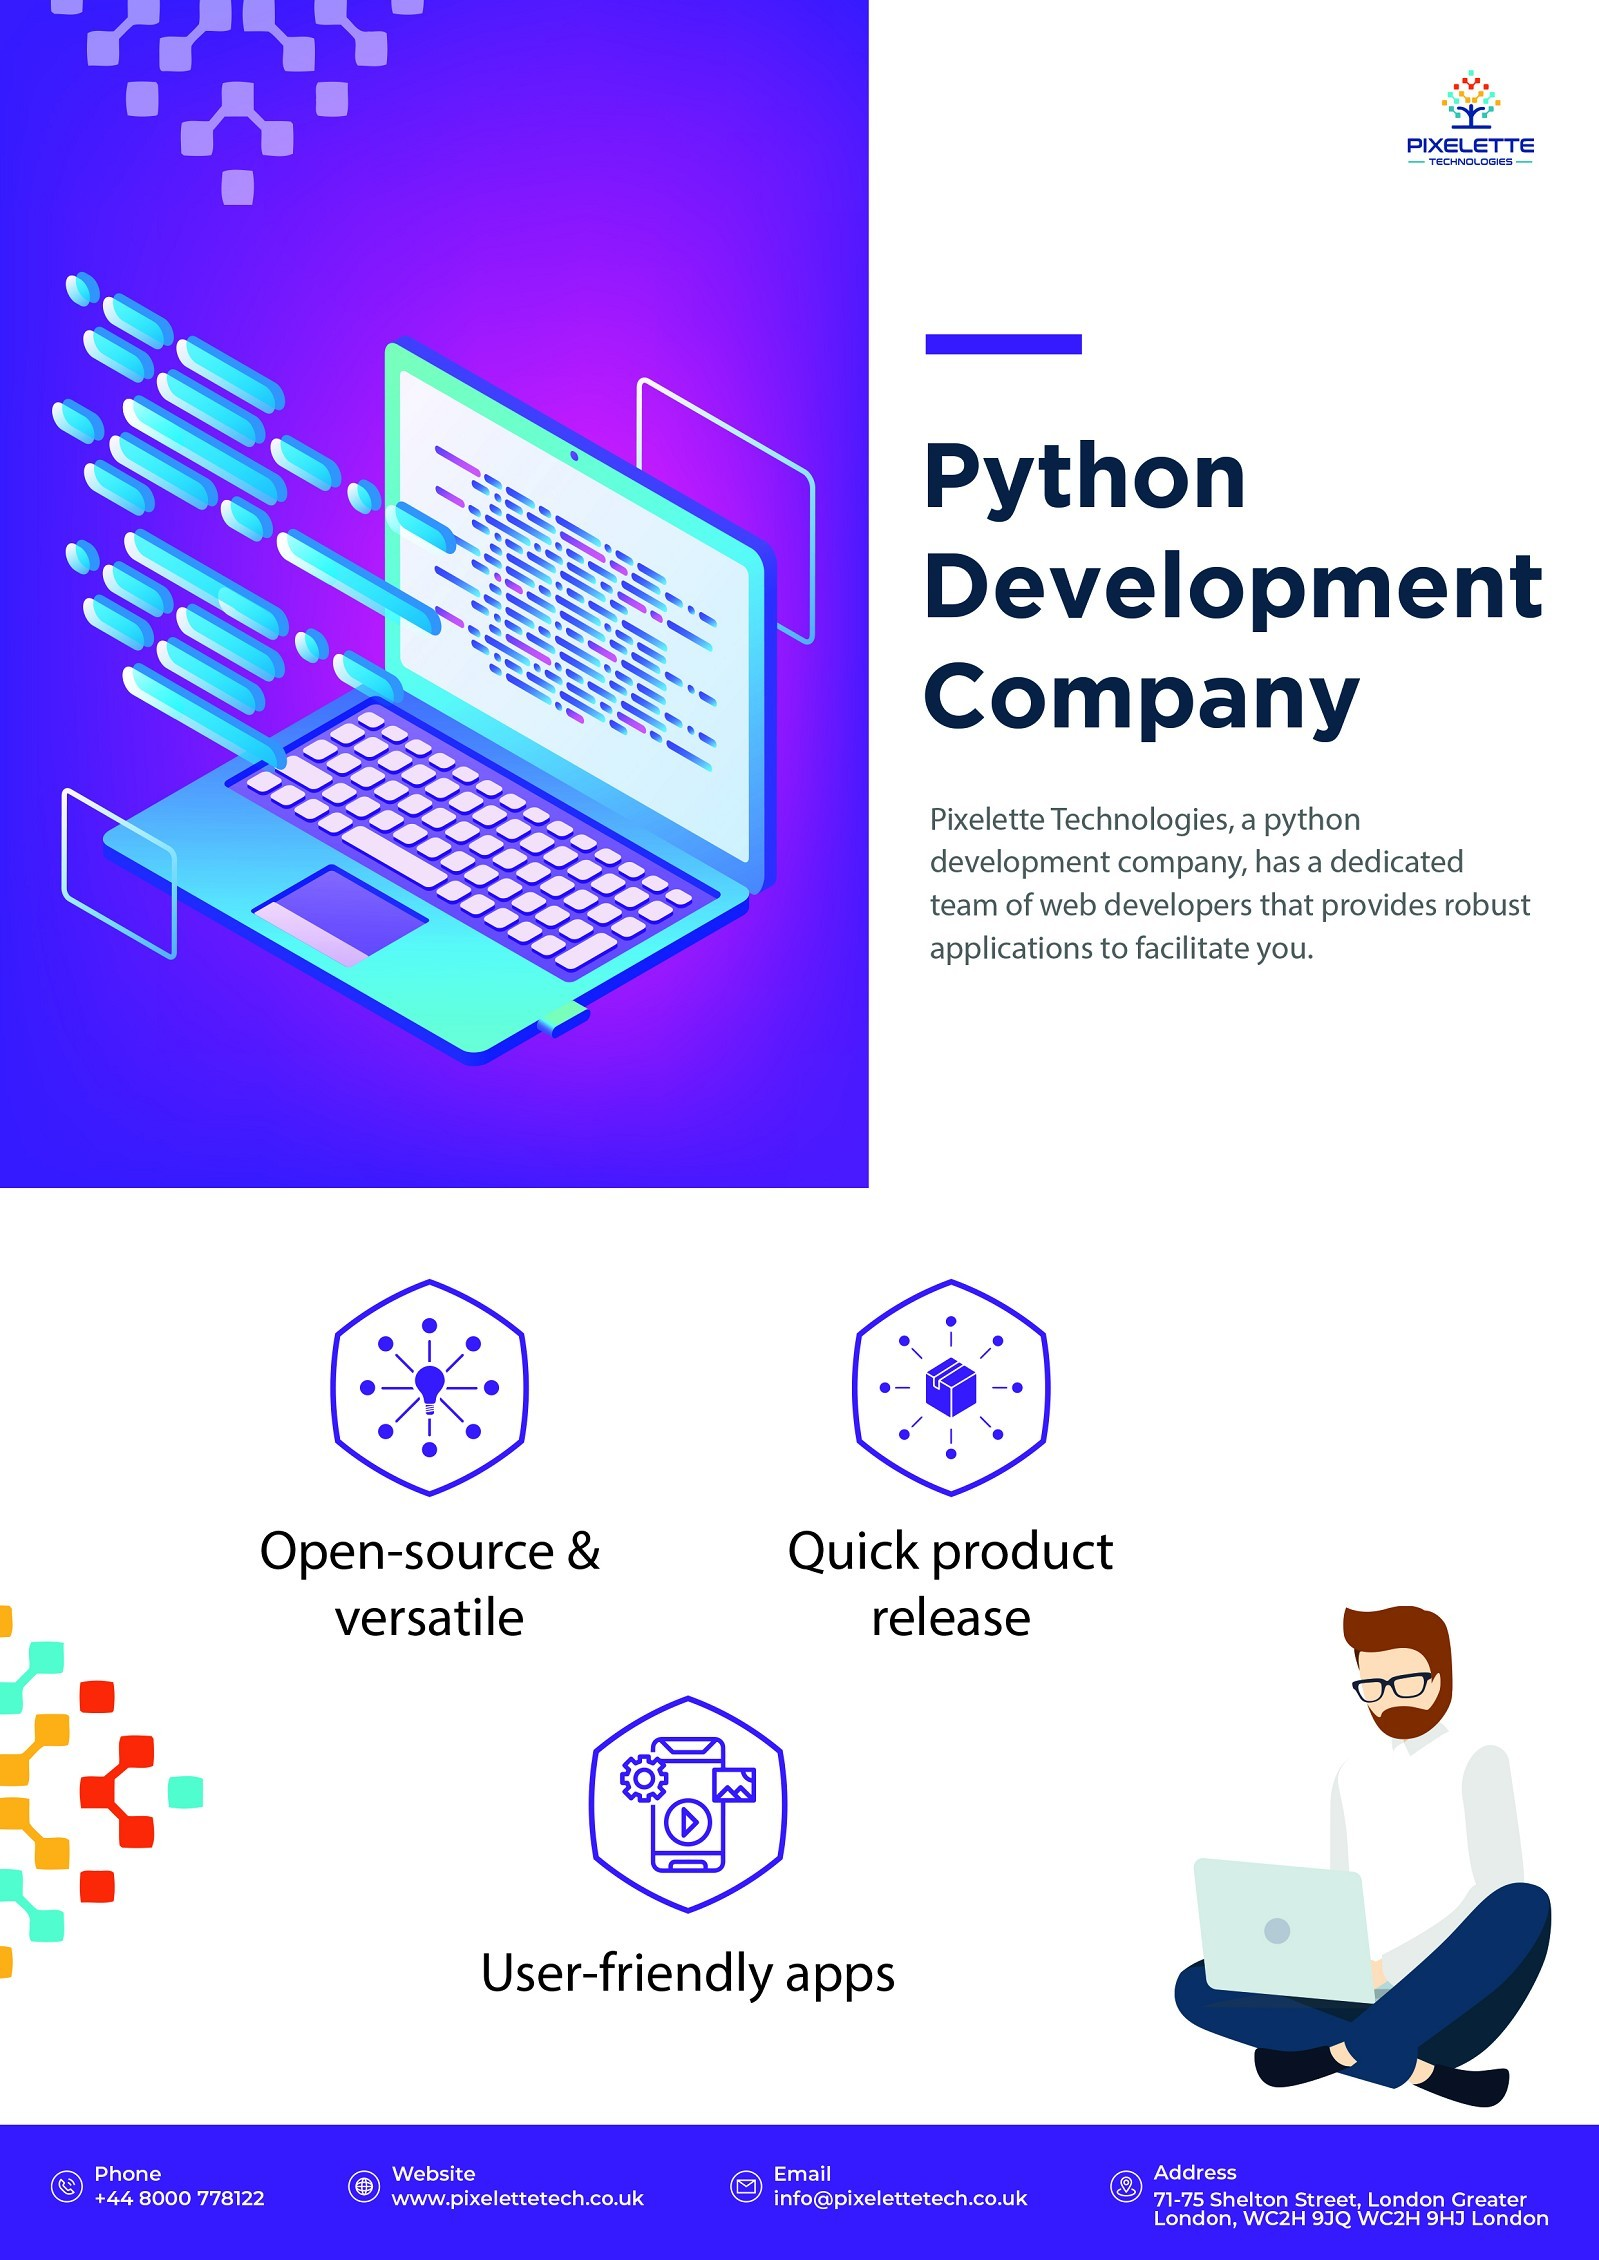 Leading Python Development Company